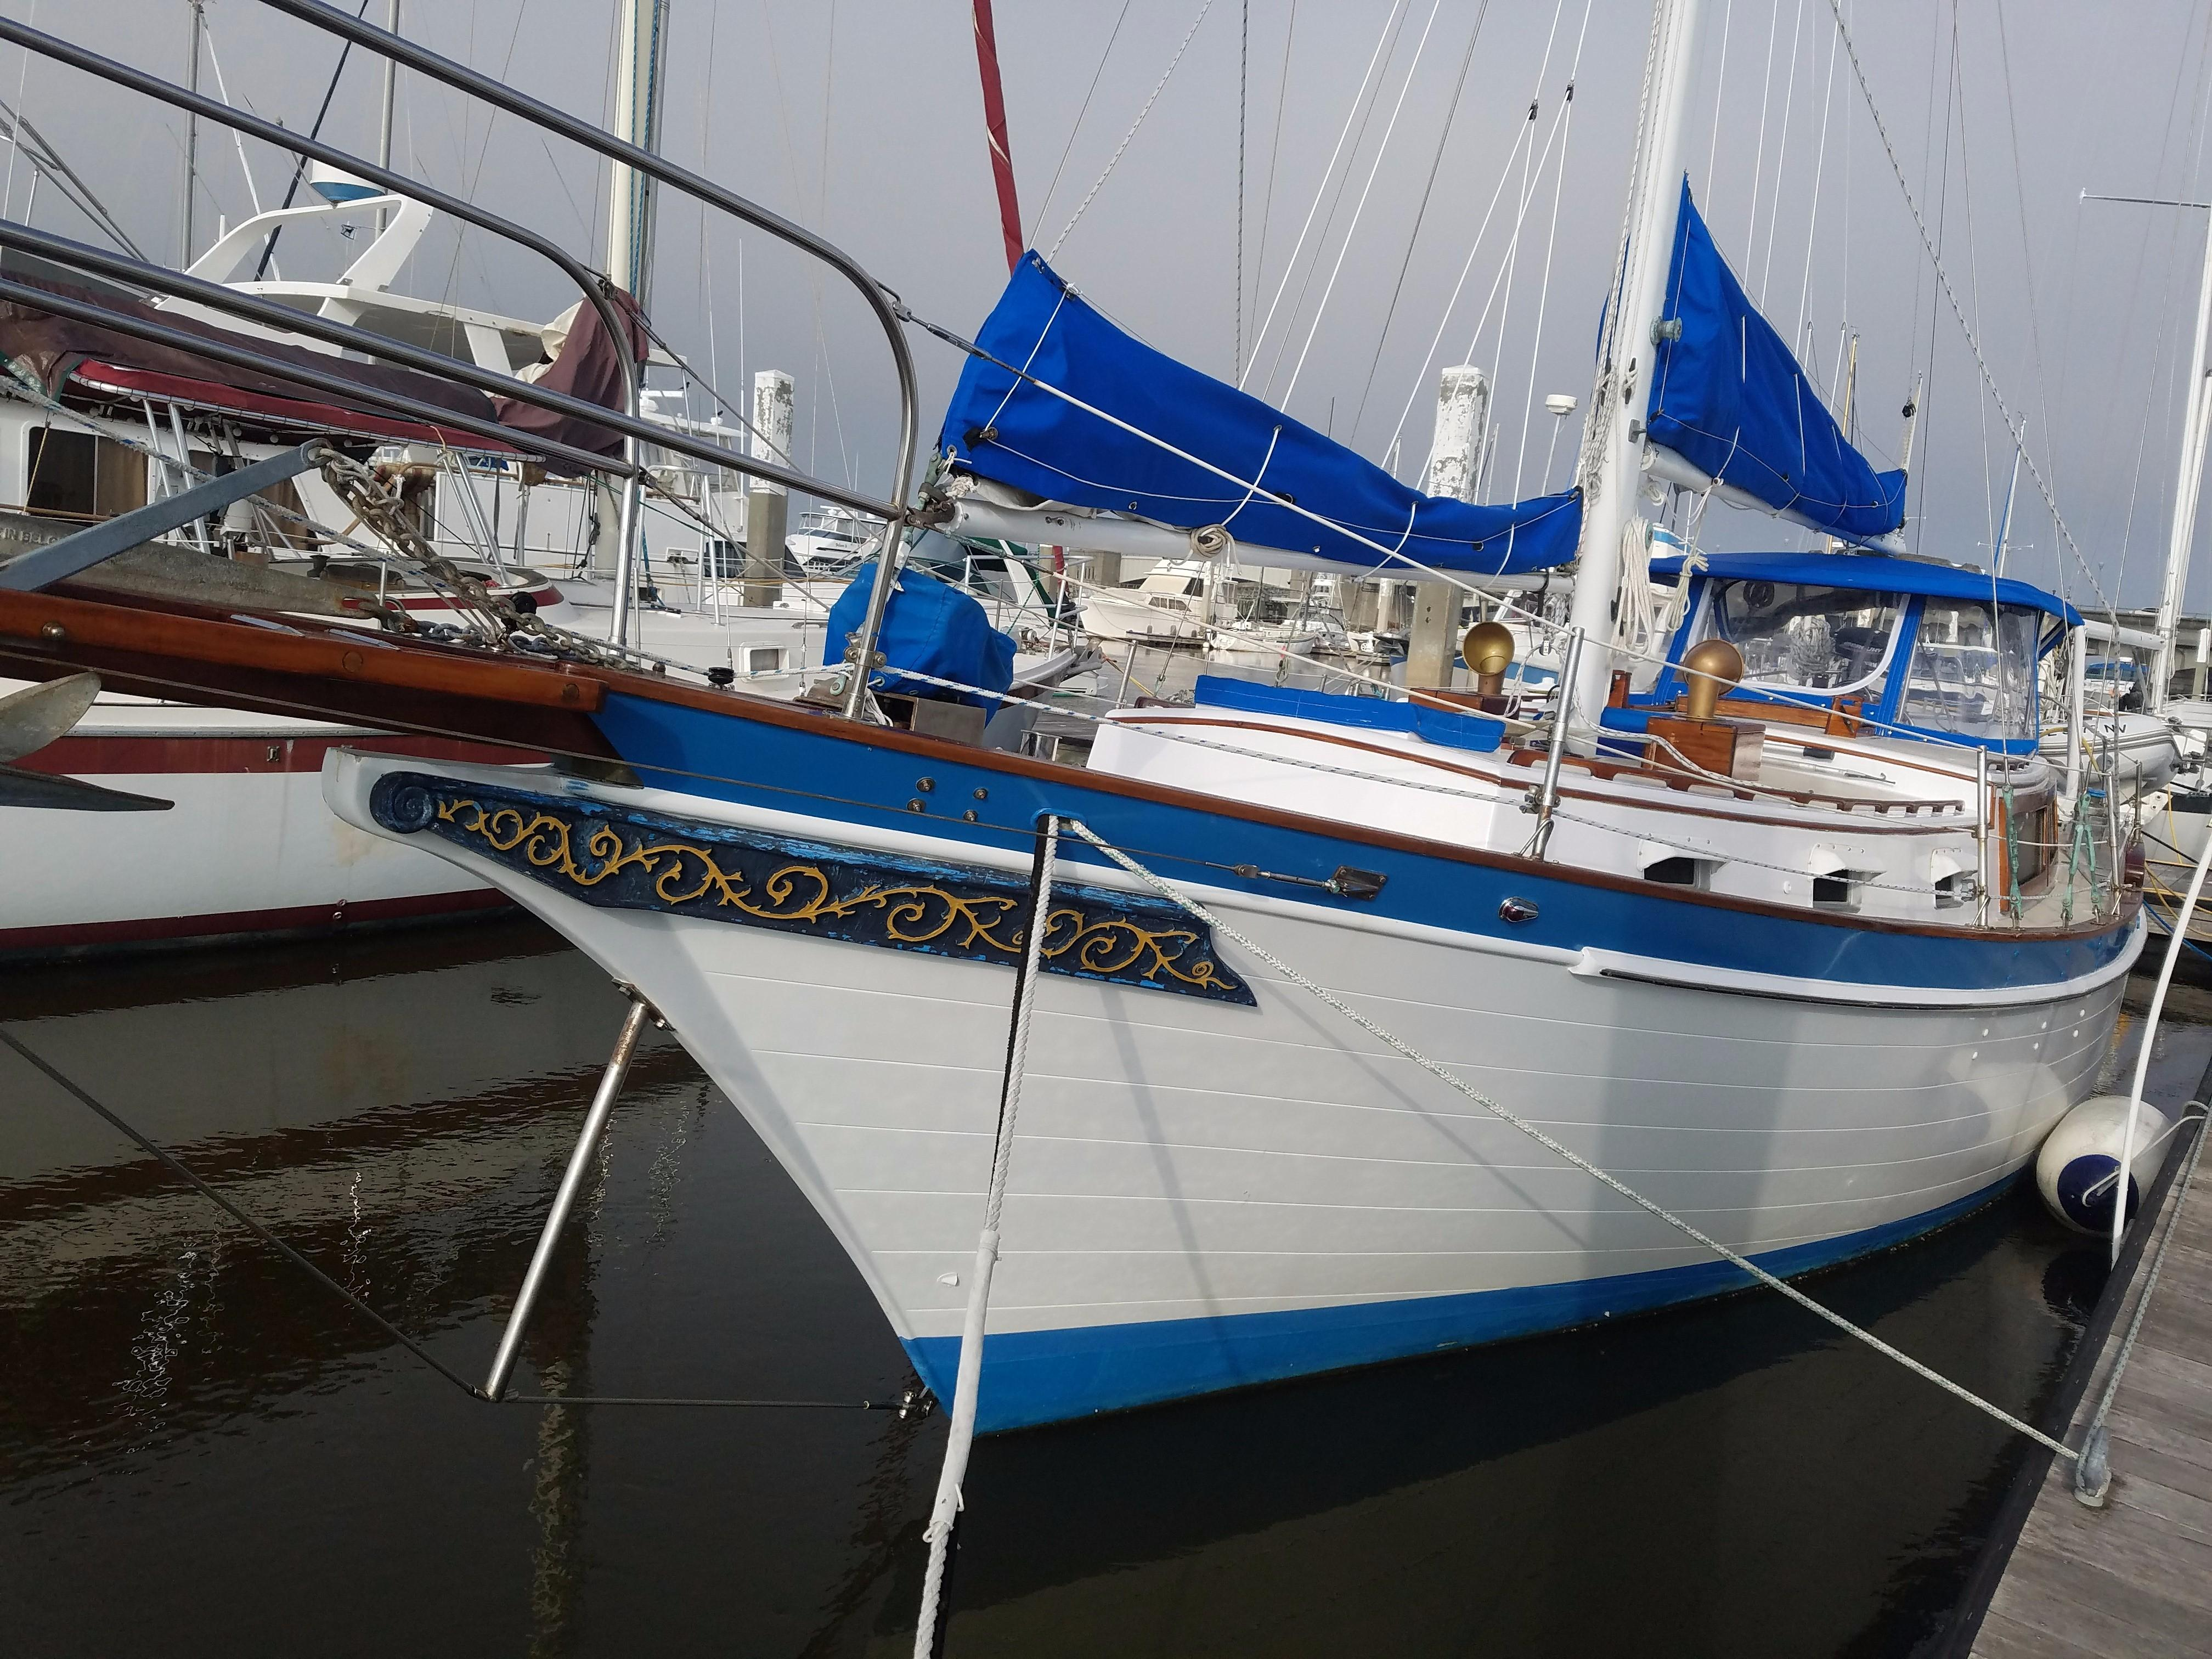 1975 Downeaster 38 Sail Boat For Sale Wwwyachtworldcom